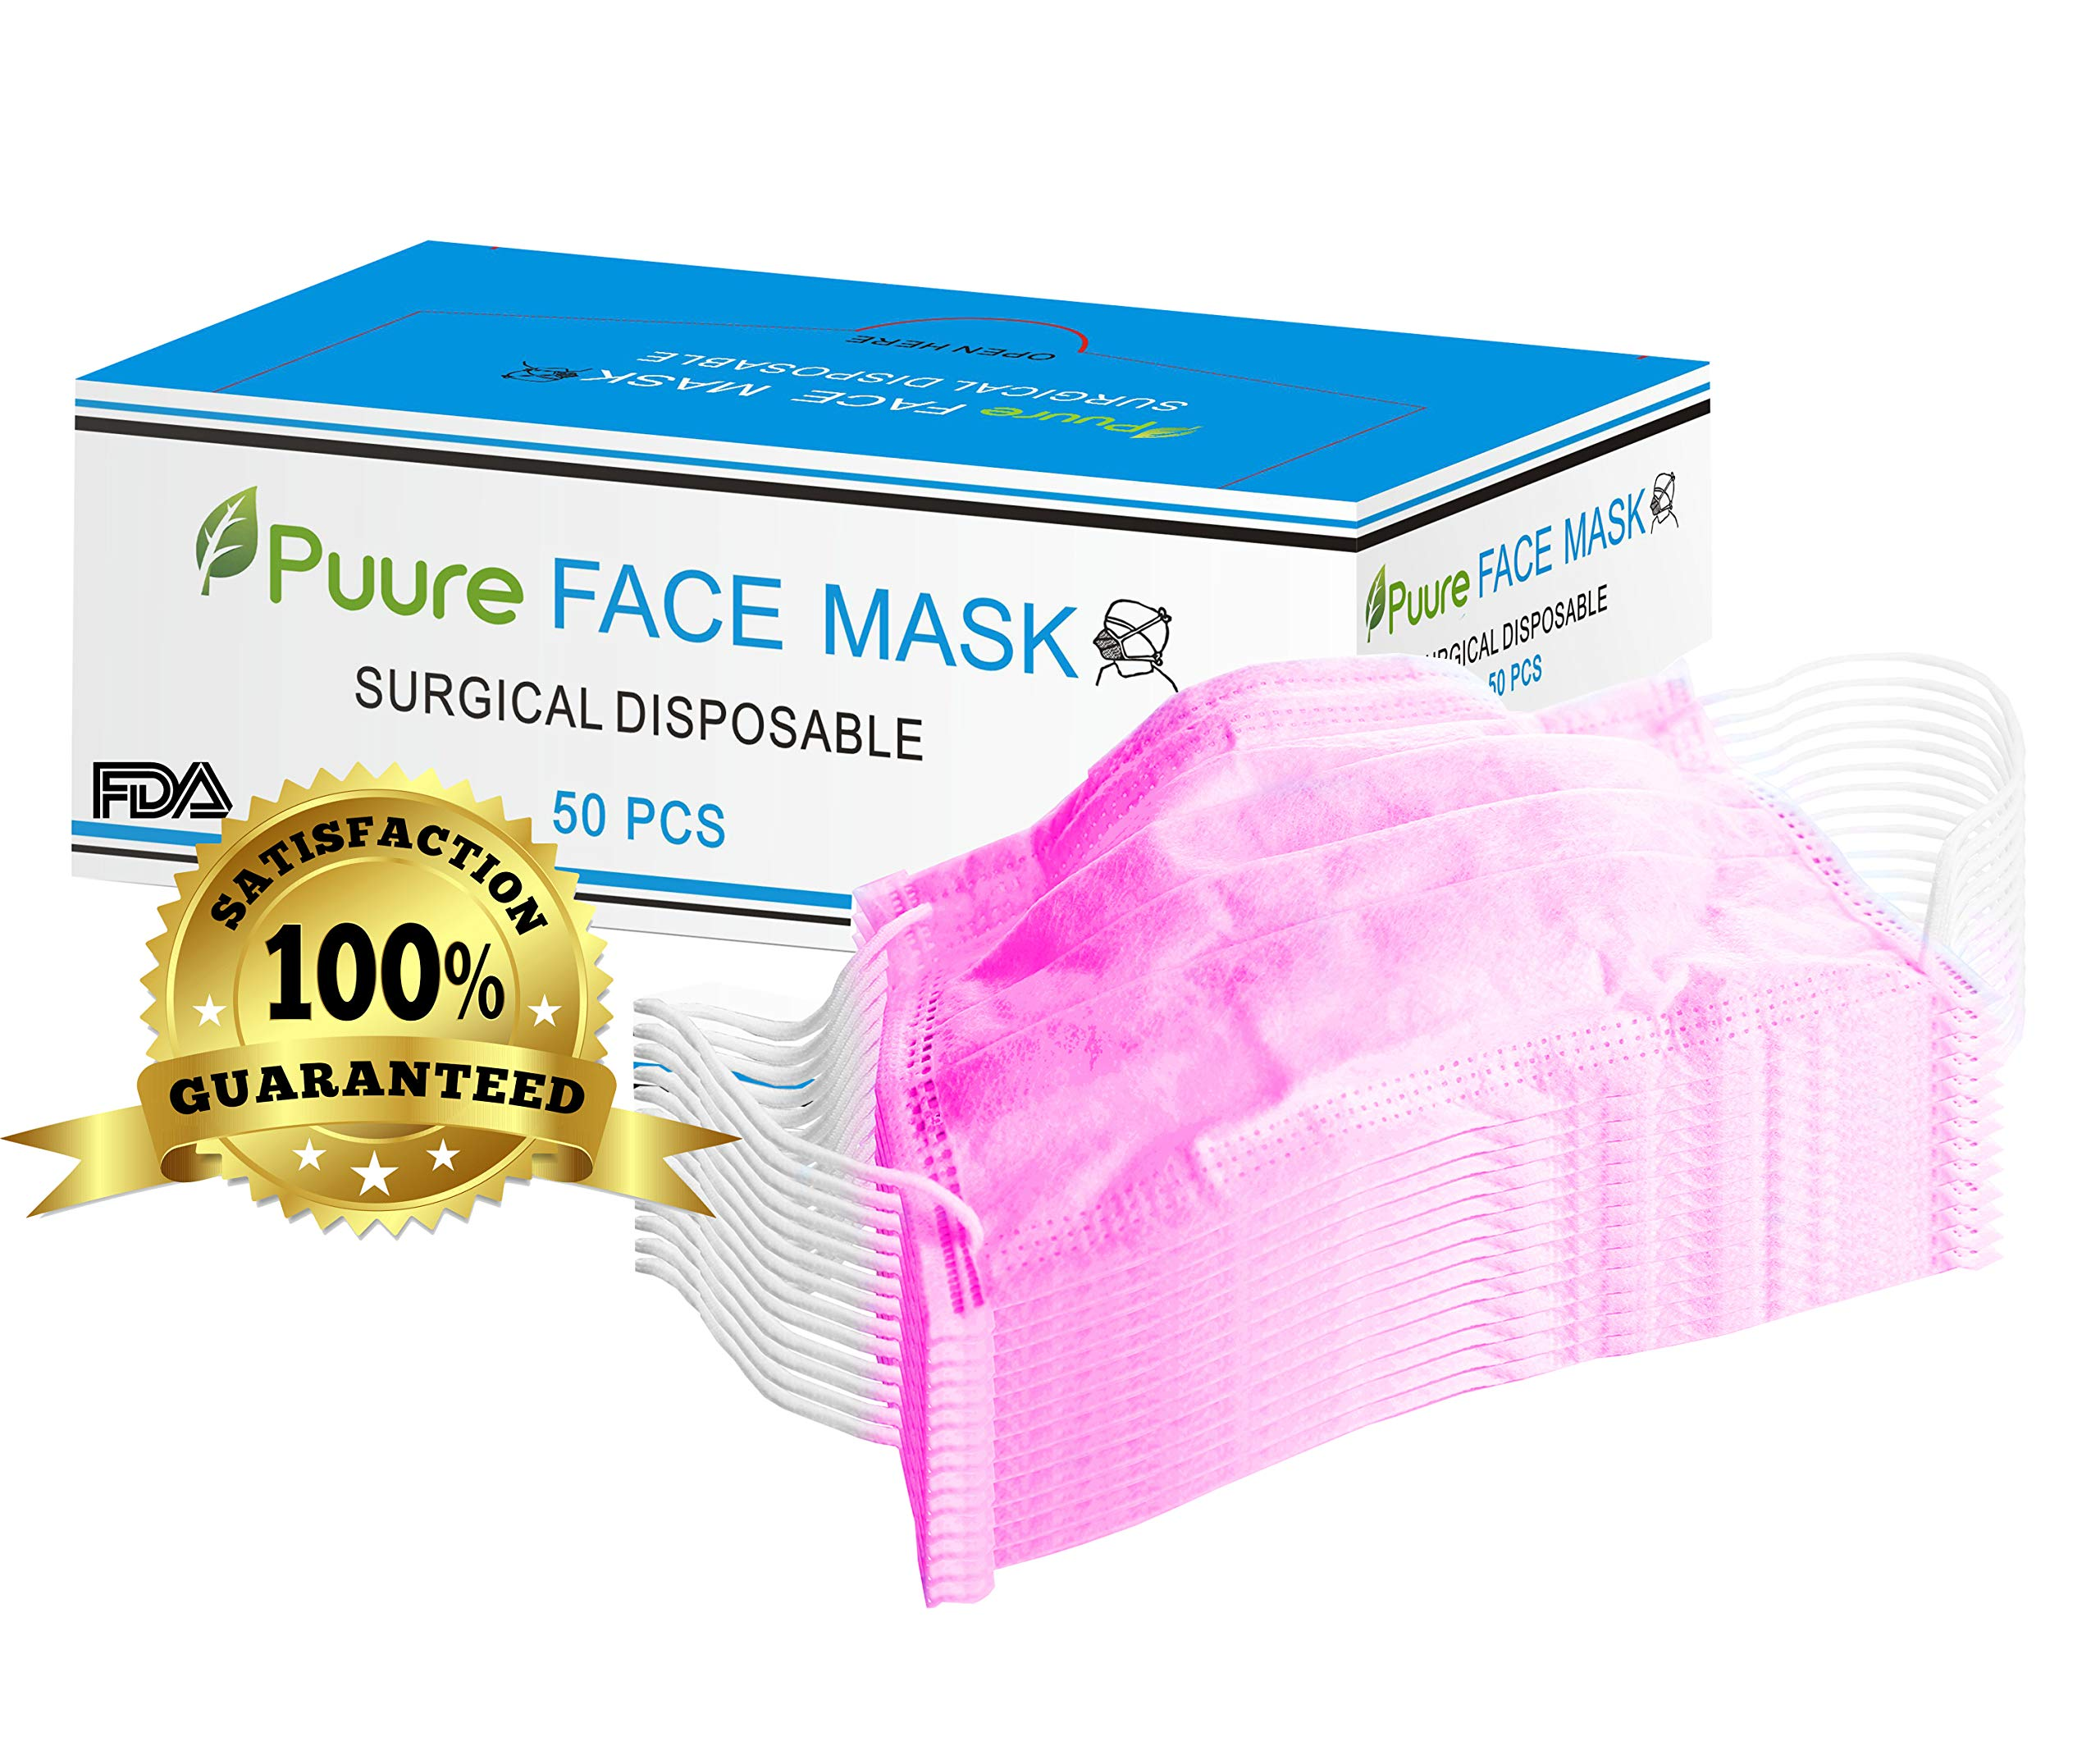 PUURE 50 Pcs Disposable Earloop Face Masks | Dental Surgical masks| FREE Ebook | Hypoallergenic Breathability | Comfort-Great For People with the Flu and Allergies - Pink